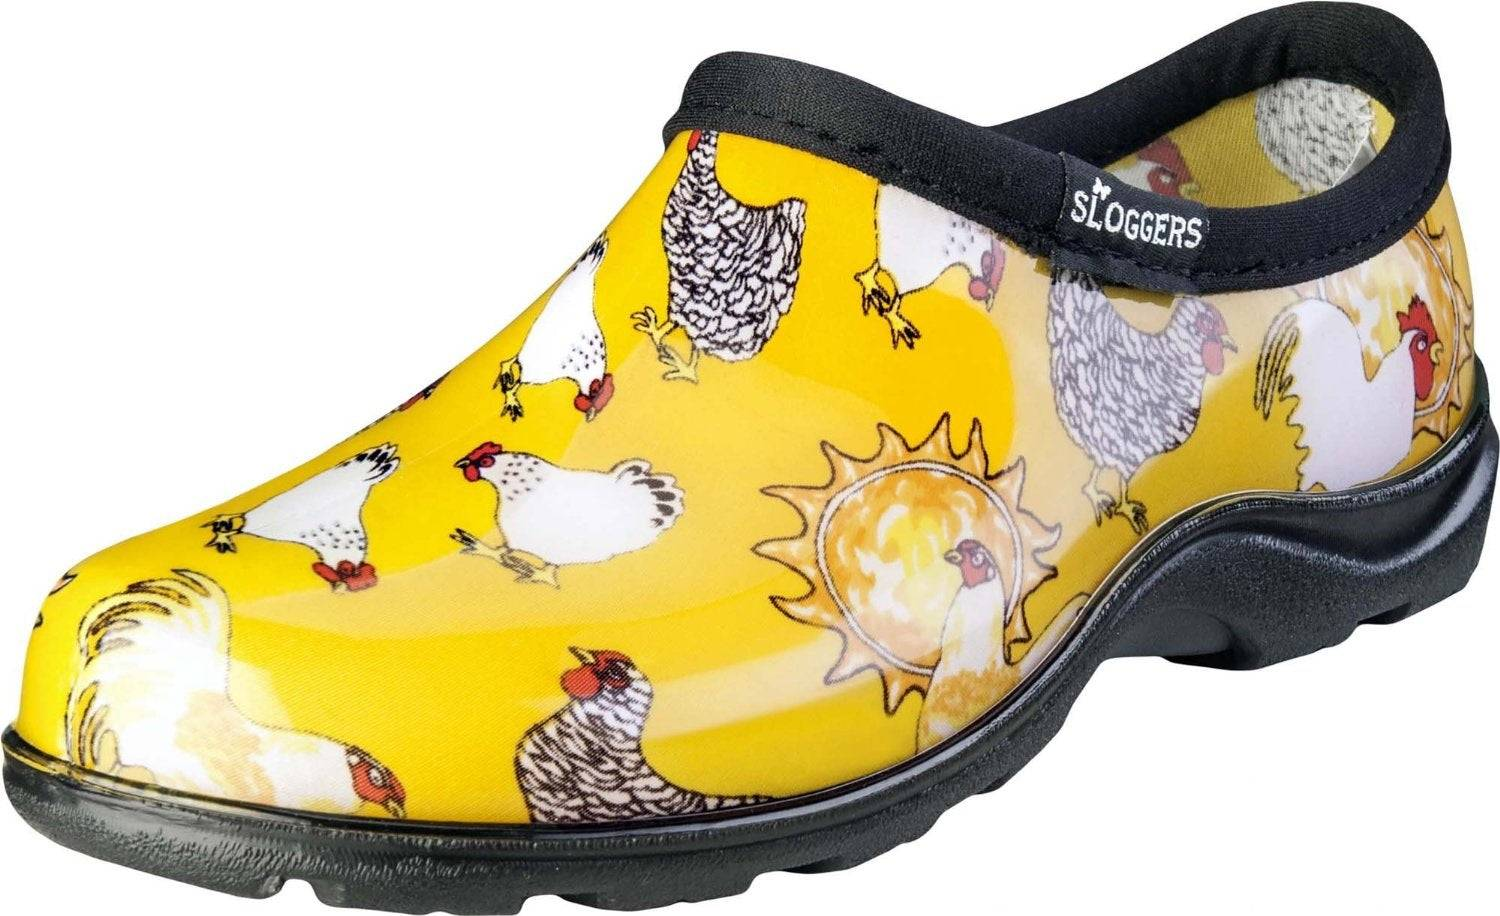 Sloggers 5116cdy10 Chicken Print Collection Women's Rain & Garden Shoe, Size 10, Daffodil Yellow